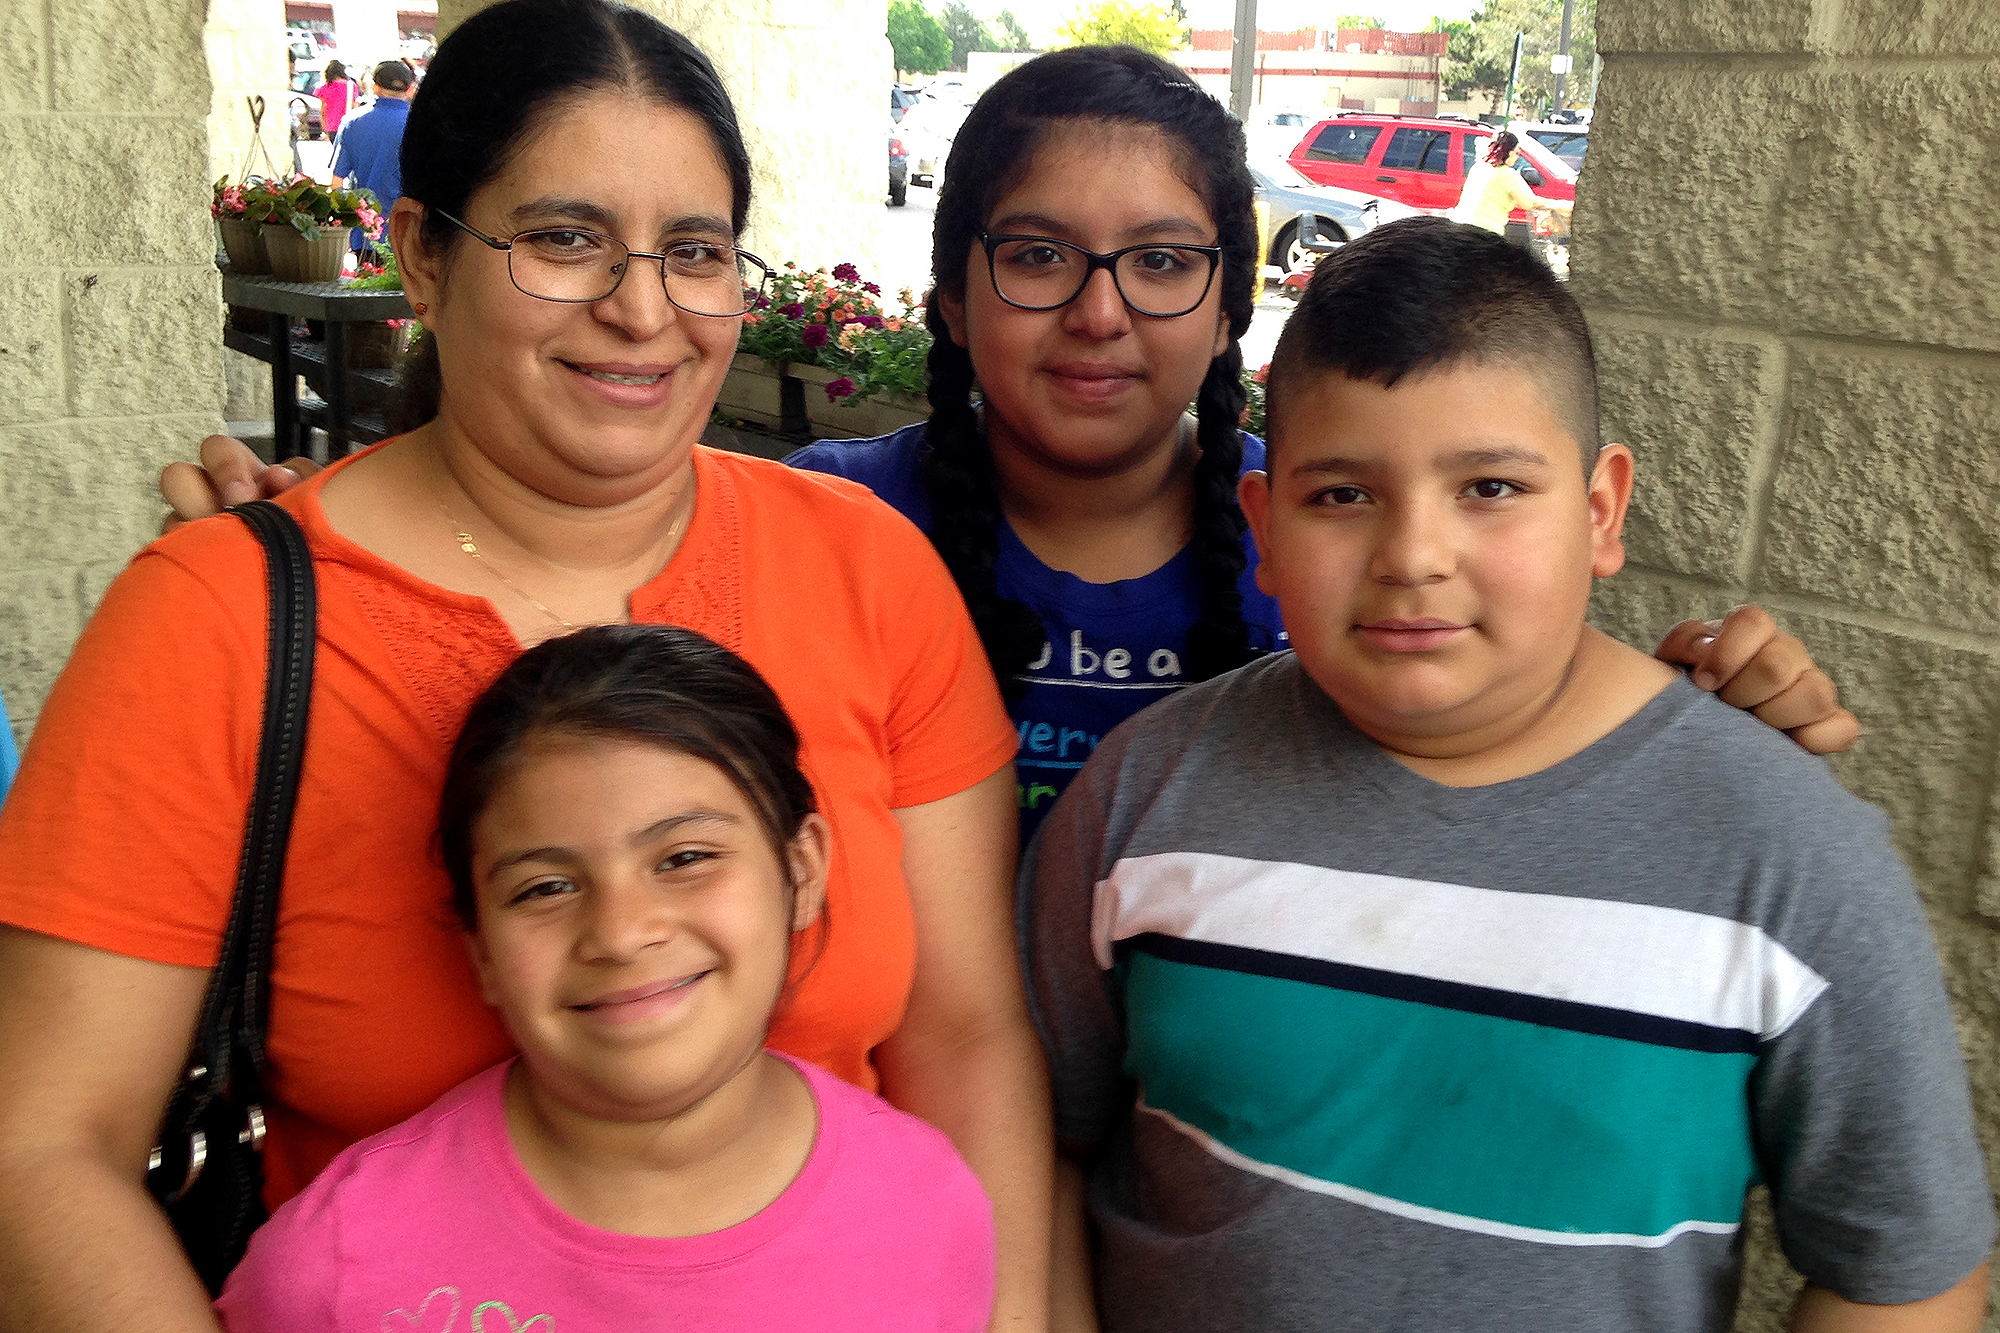 Photo: Argelia Sanchez family, childhood obesity (Daley)